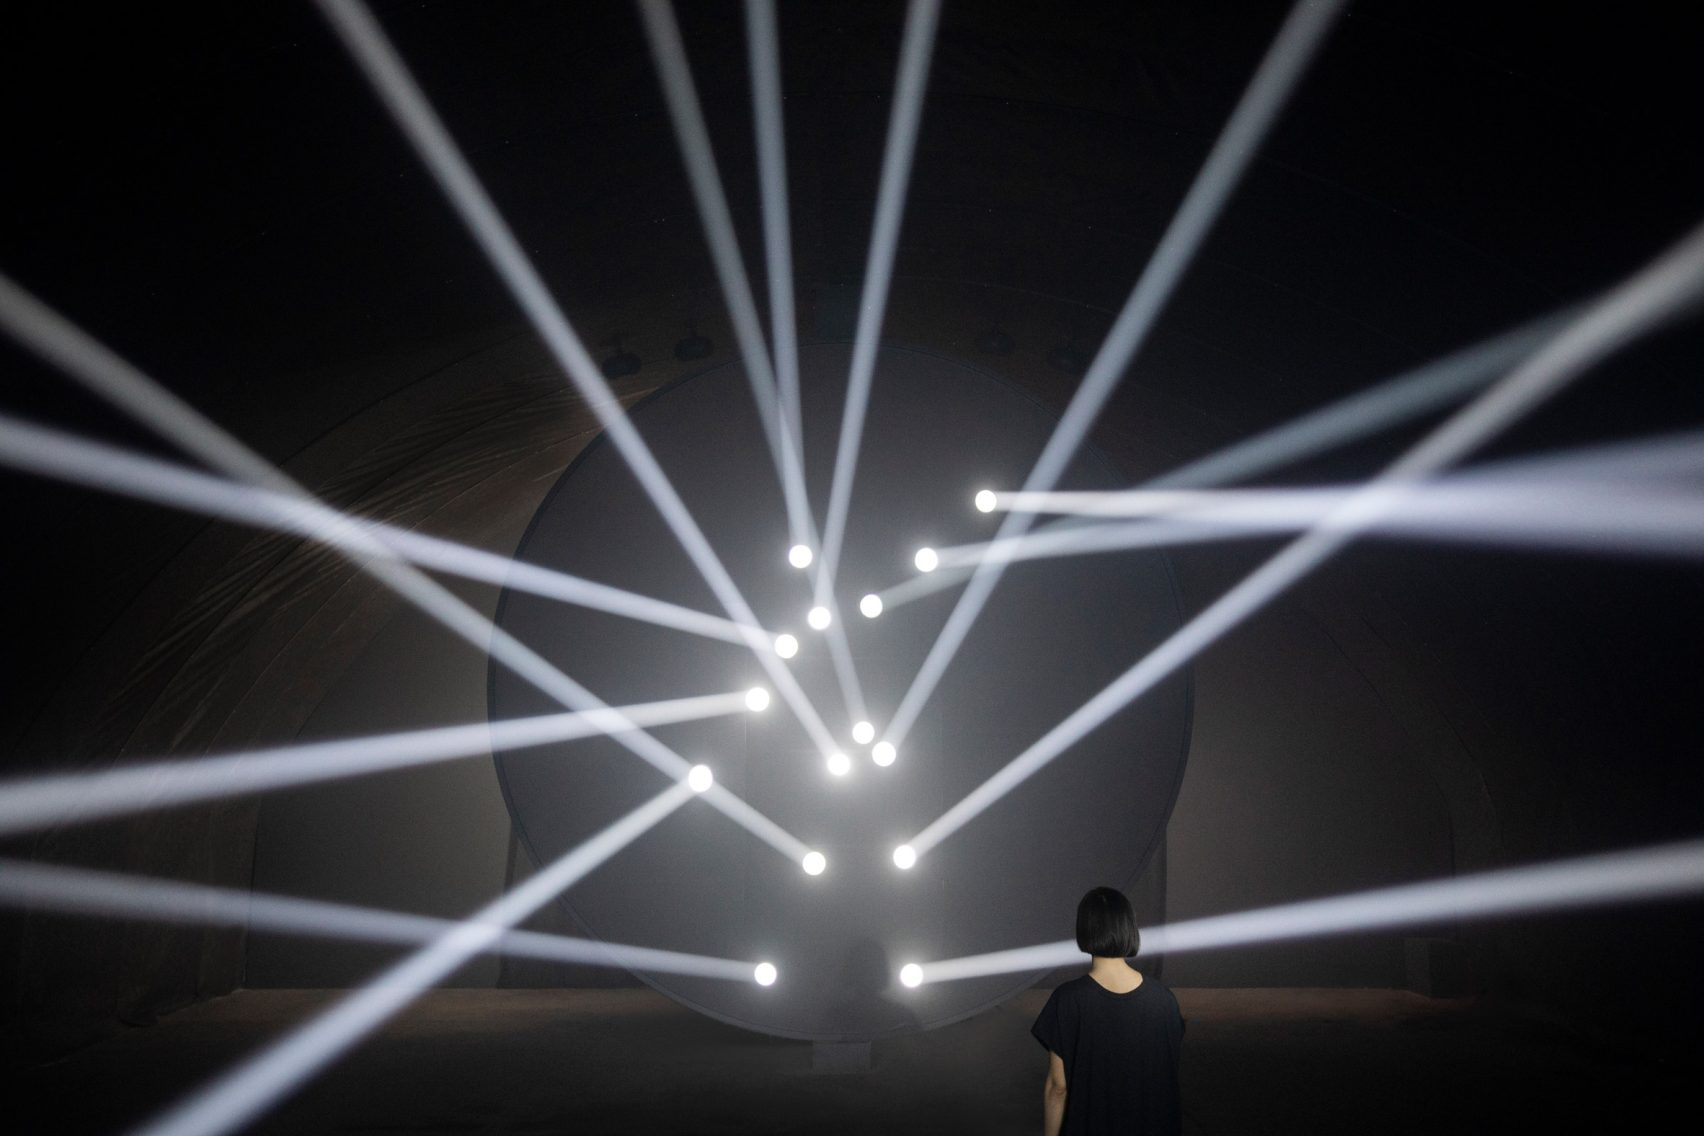 Humanscale's Bodies In Motion installation for Milan design week is an interactive light sculpture